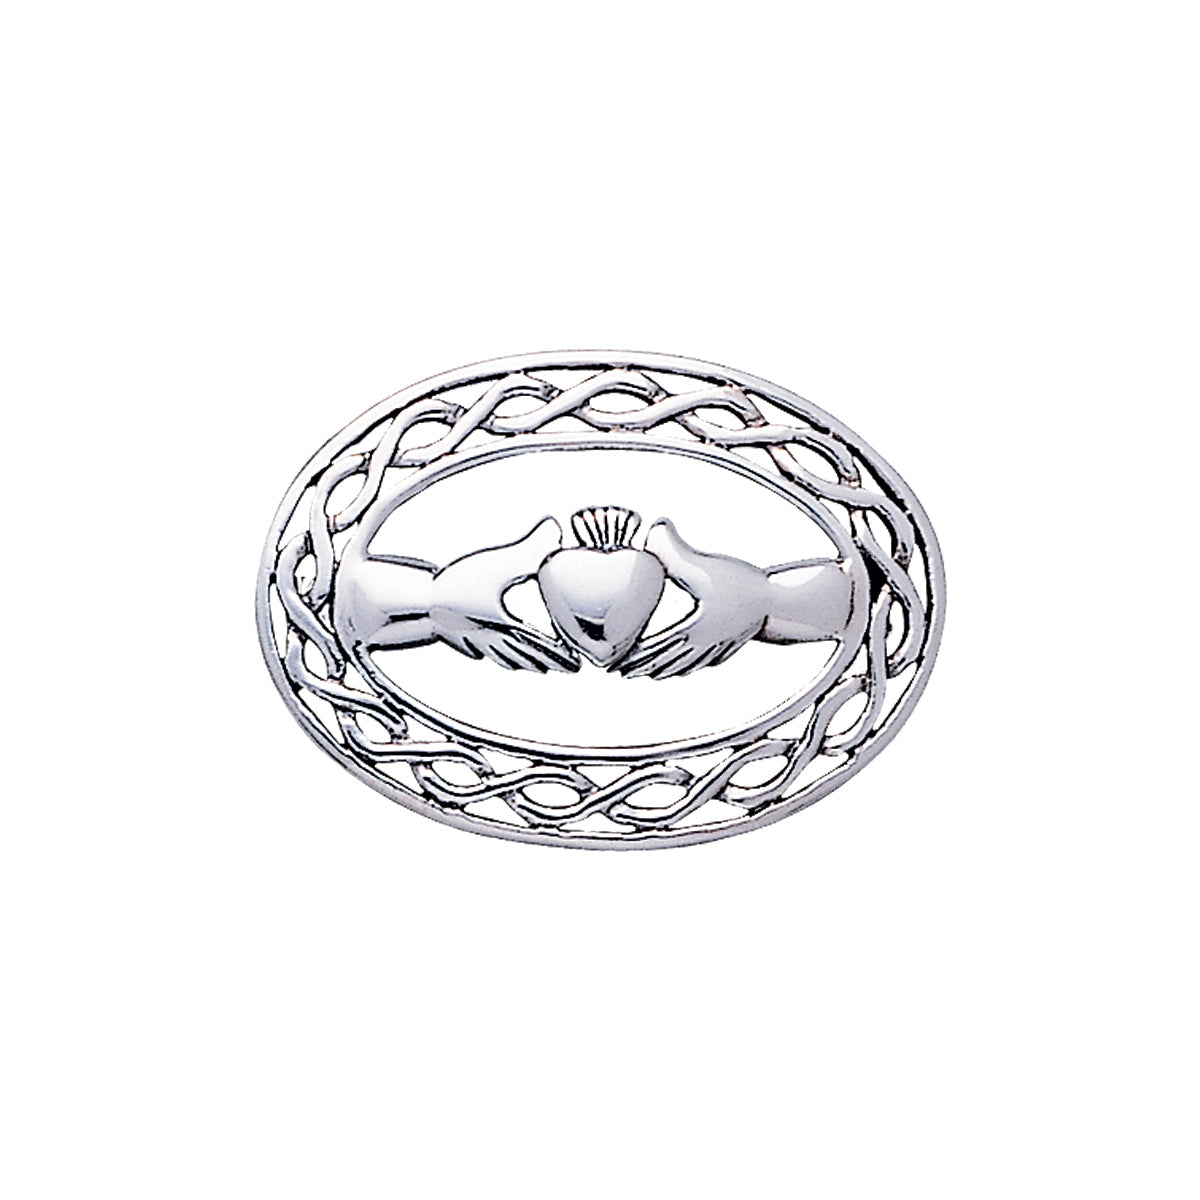 Jewelry Trends Sterling Silver Irish Claddagh With Celtic Knot Work